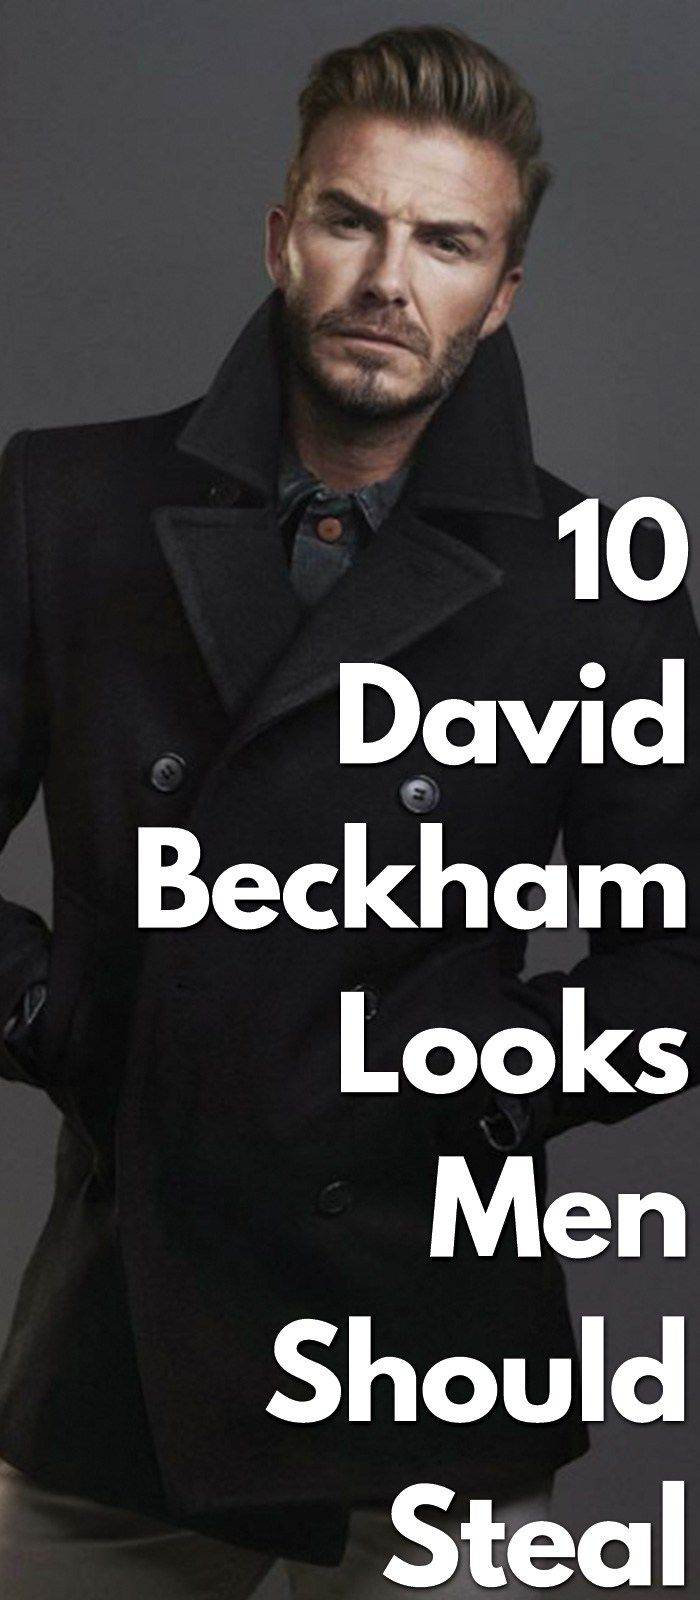 David beckham fashion blog 87